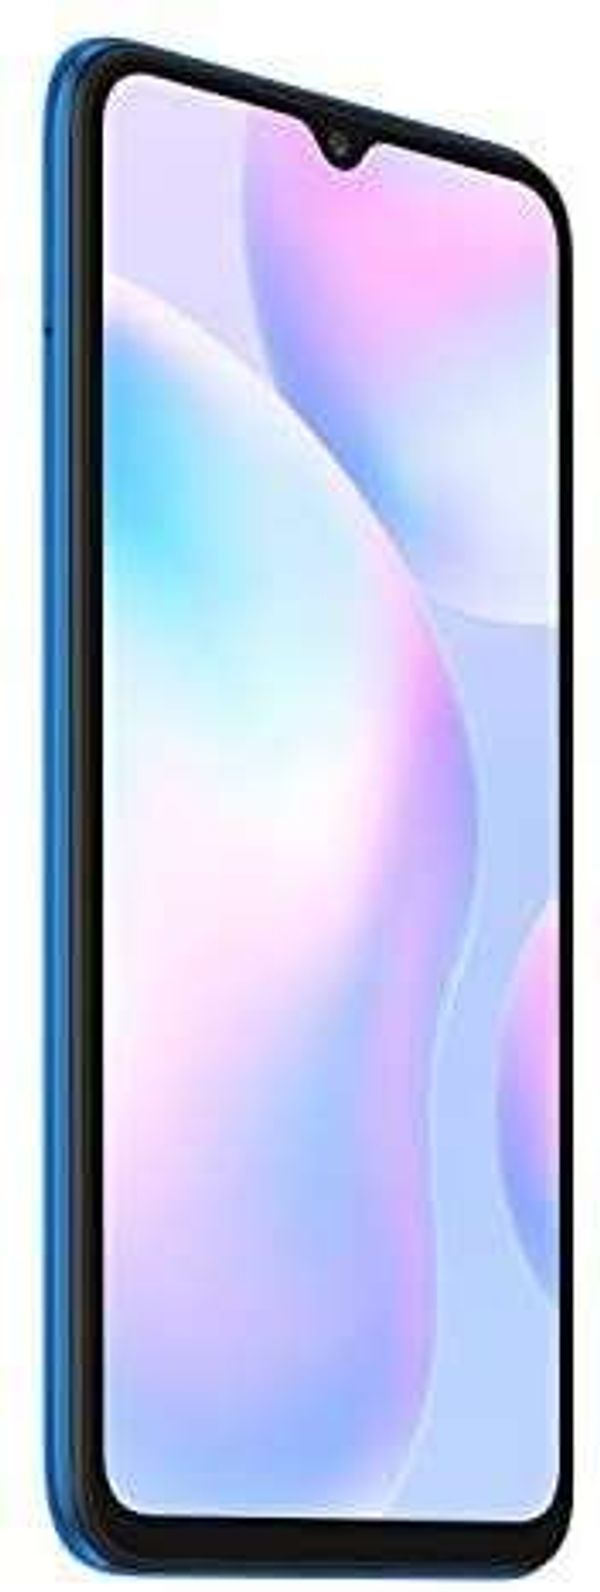 Xiaomi Redmi 9AT 2GB/32GB (UK Version + Official 2 year warranty), Sky Blue